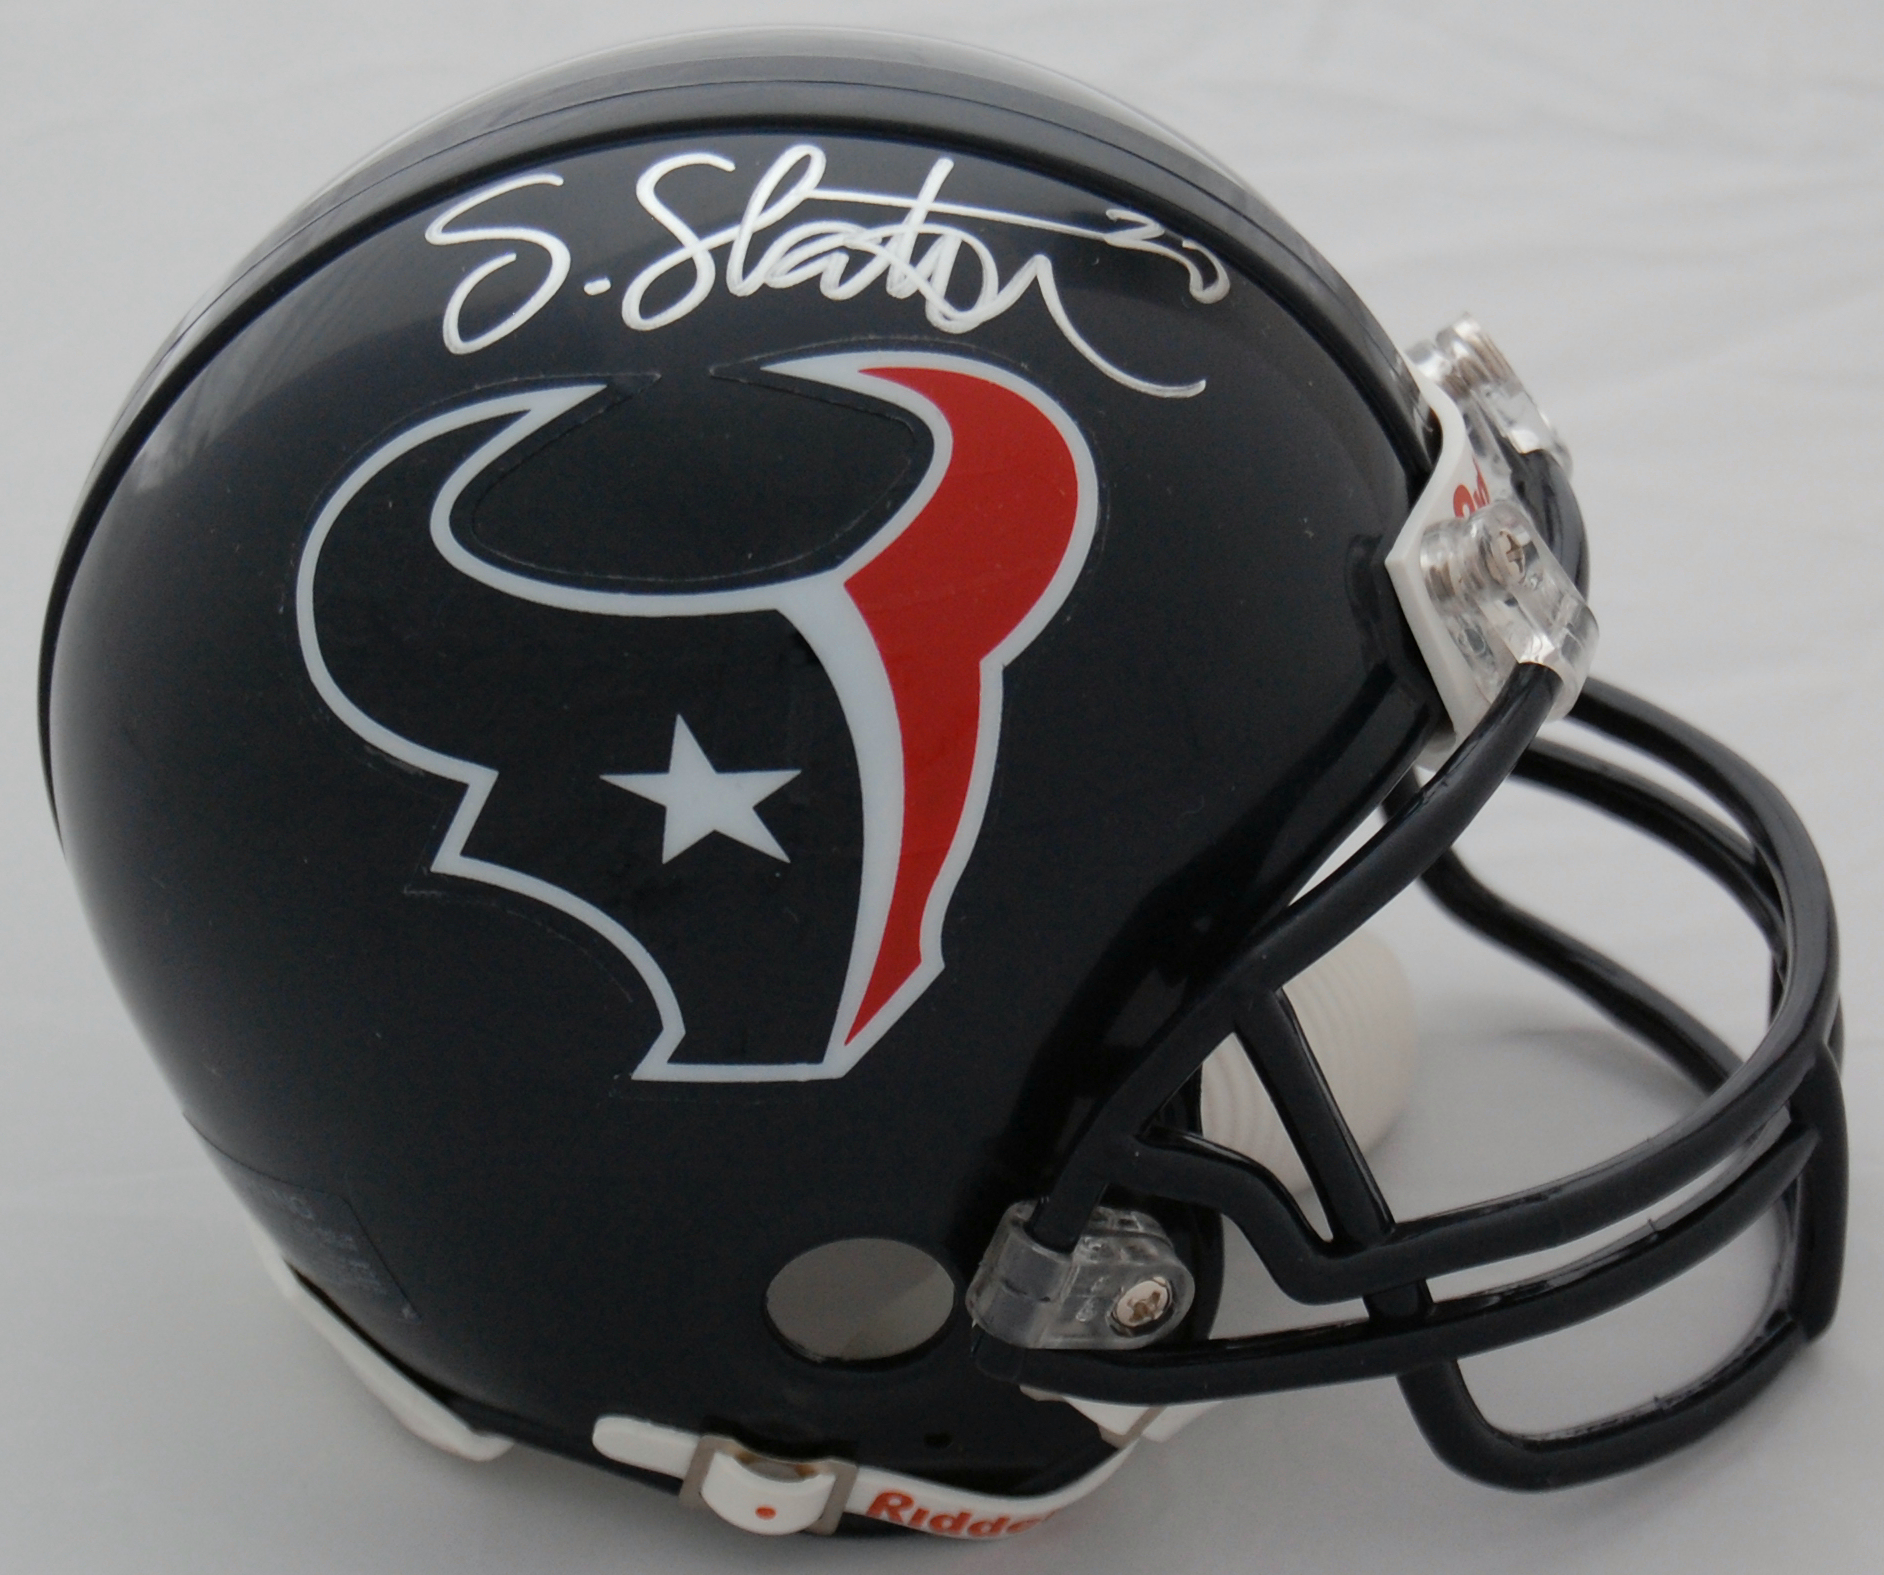 Steve Slaton Houston Texans Autographed Mini Helmet